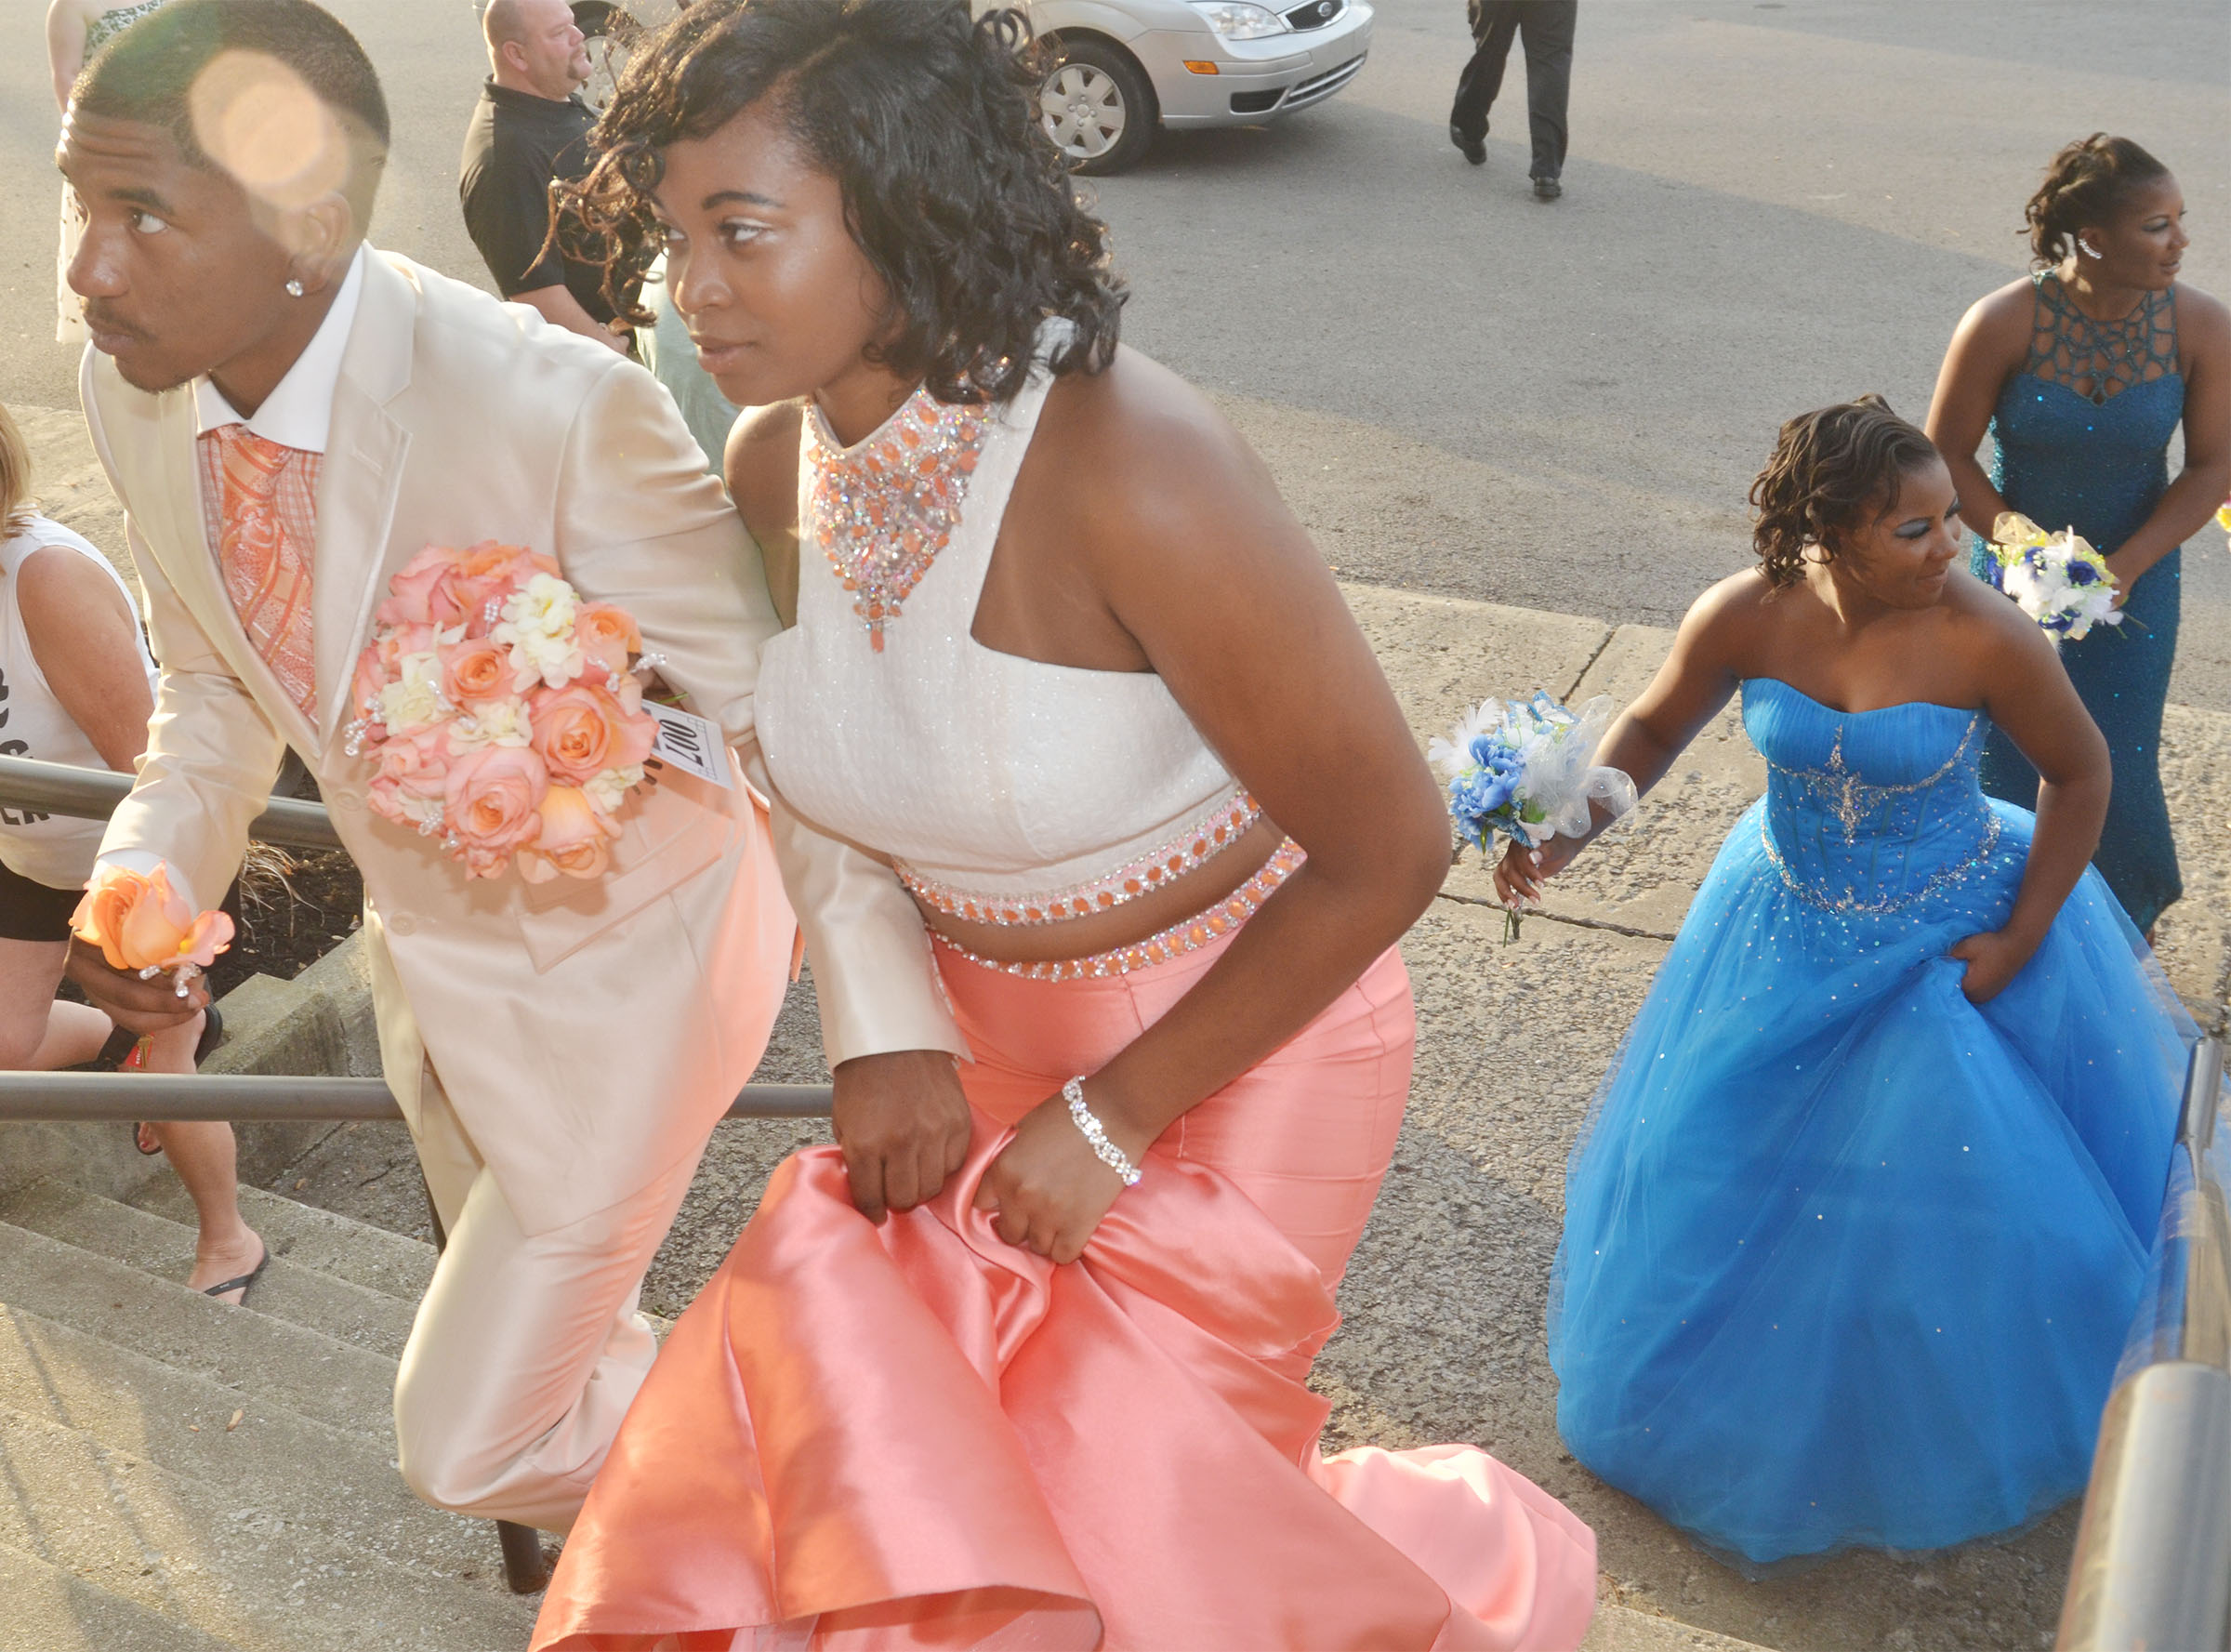 CHS juniors Tyrion Taylor, at left, and Vonnea Smith walk into CHS for prom walk.